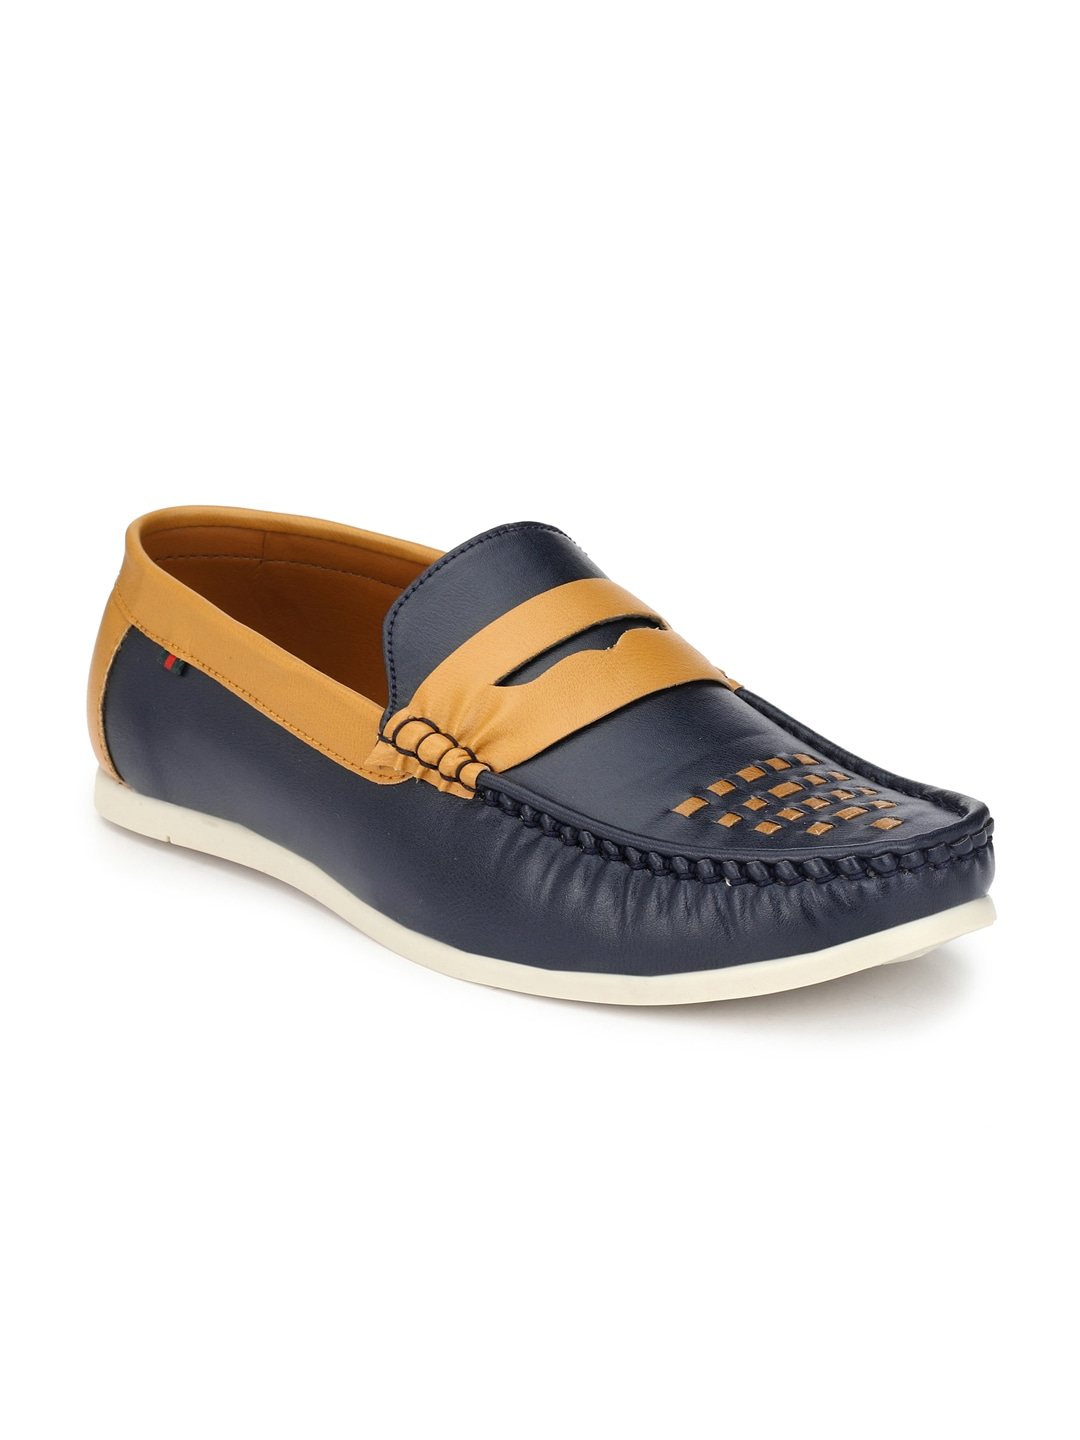 Guava Shoes - Buy Guava Shoes online in India e0b2ea7fe1a